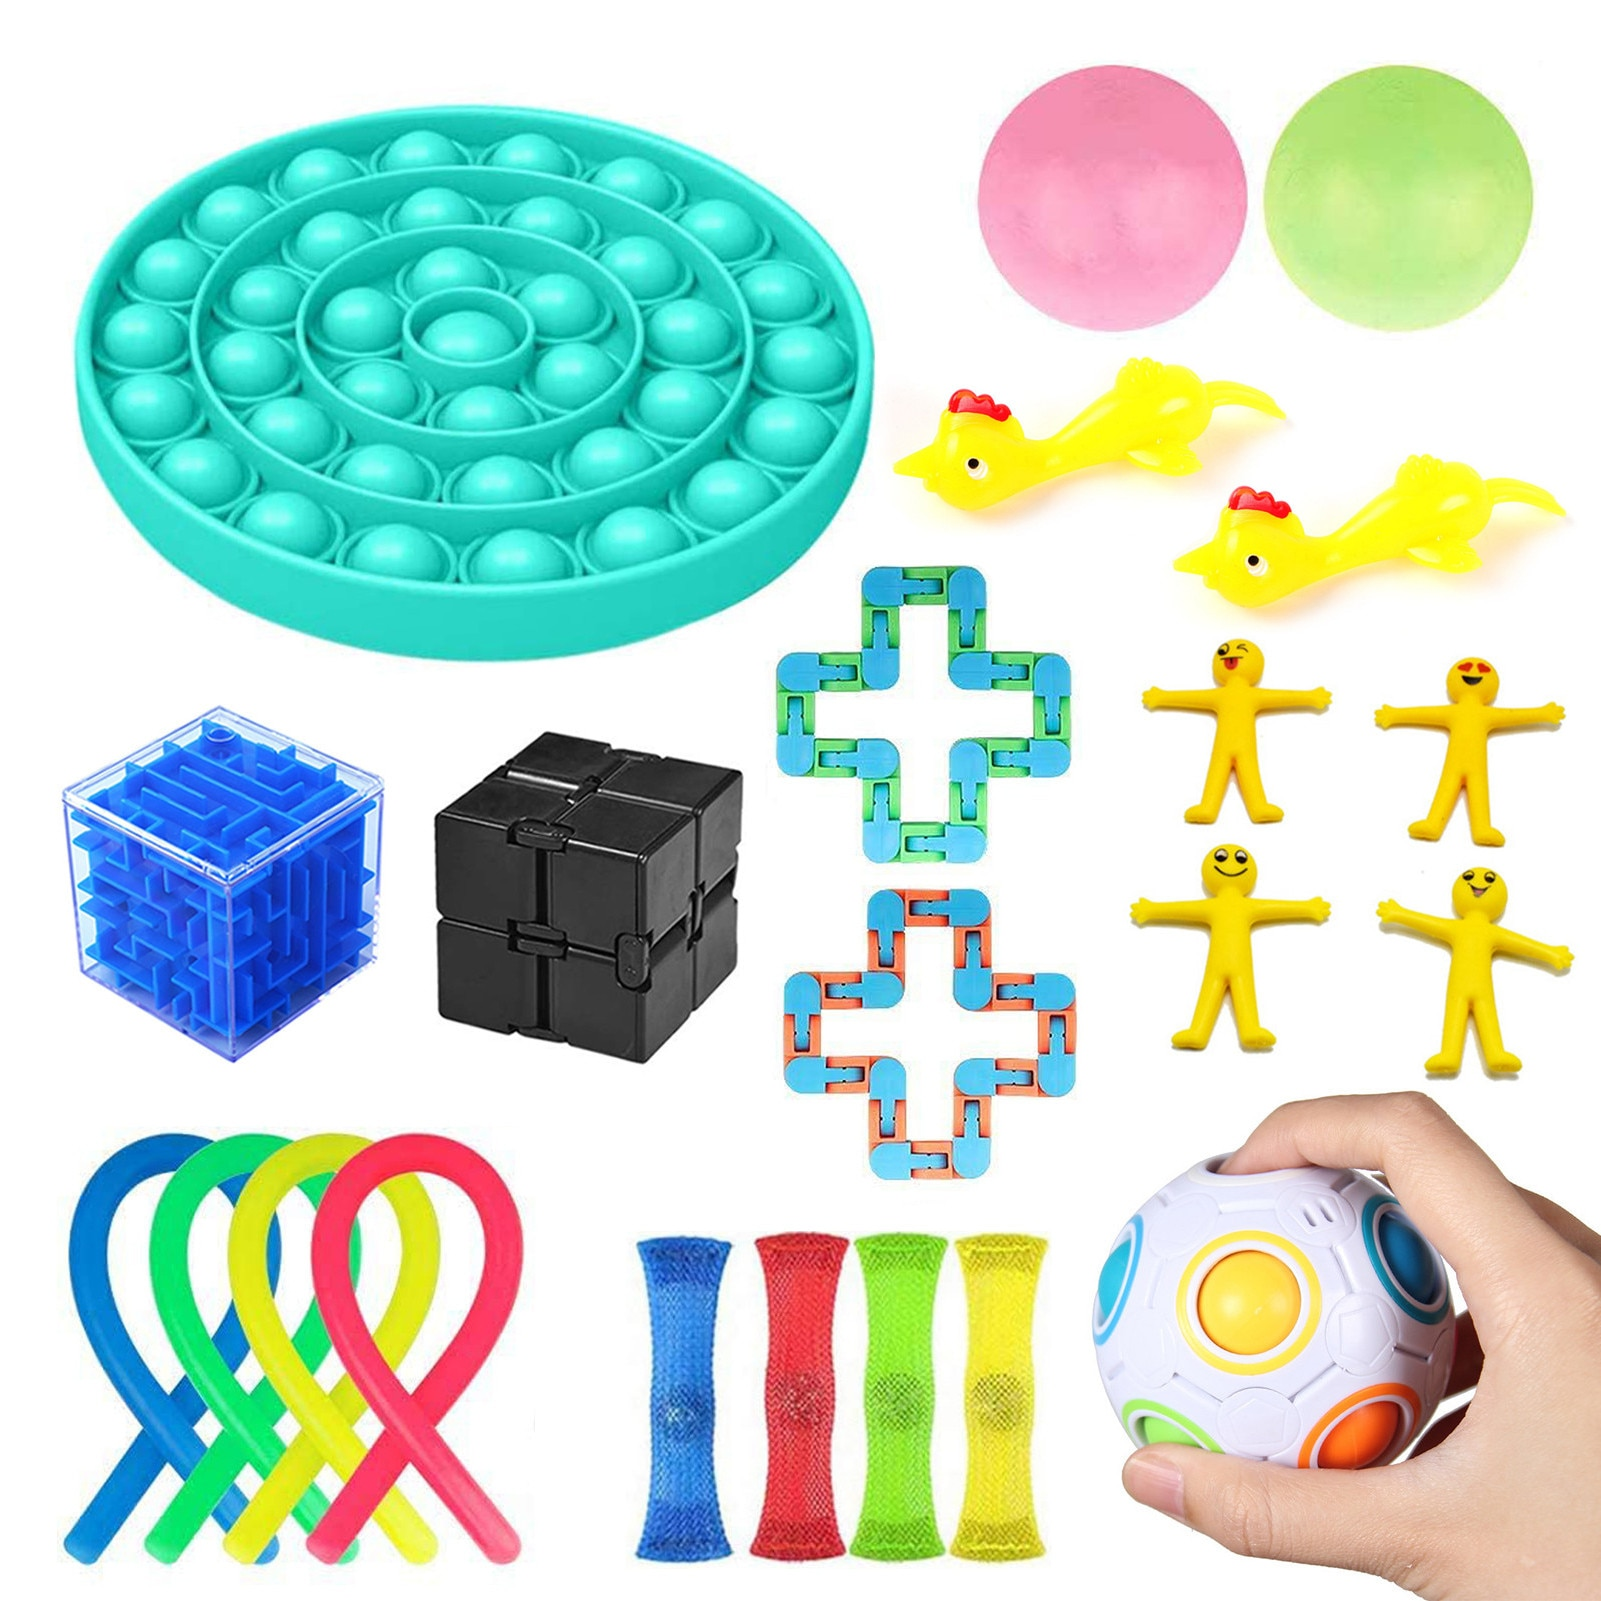 22PCS Fidget Simple Dimple Toy Silicone Stress Reliever Educational Decompression Toys Autism Anxiety Relief Stress Bubble enlarge